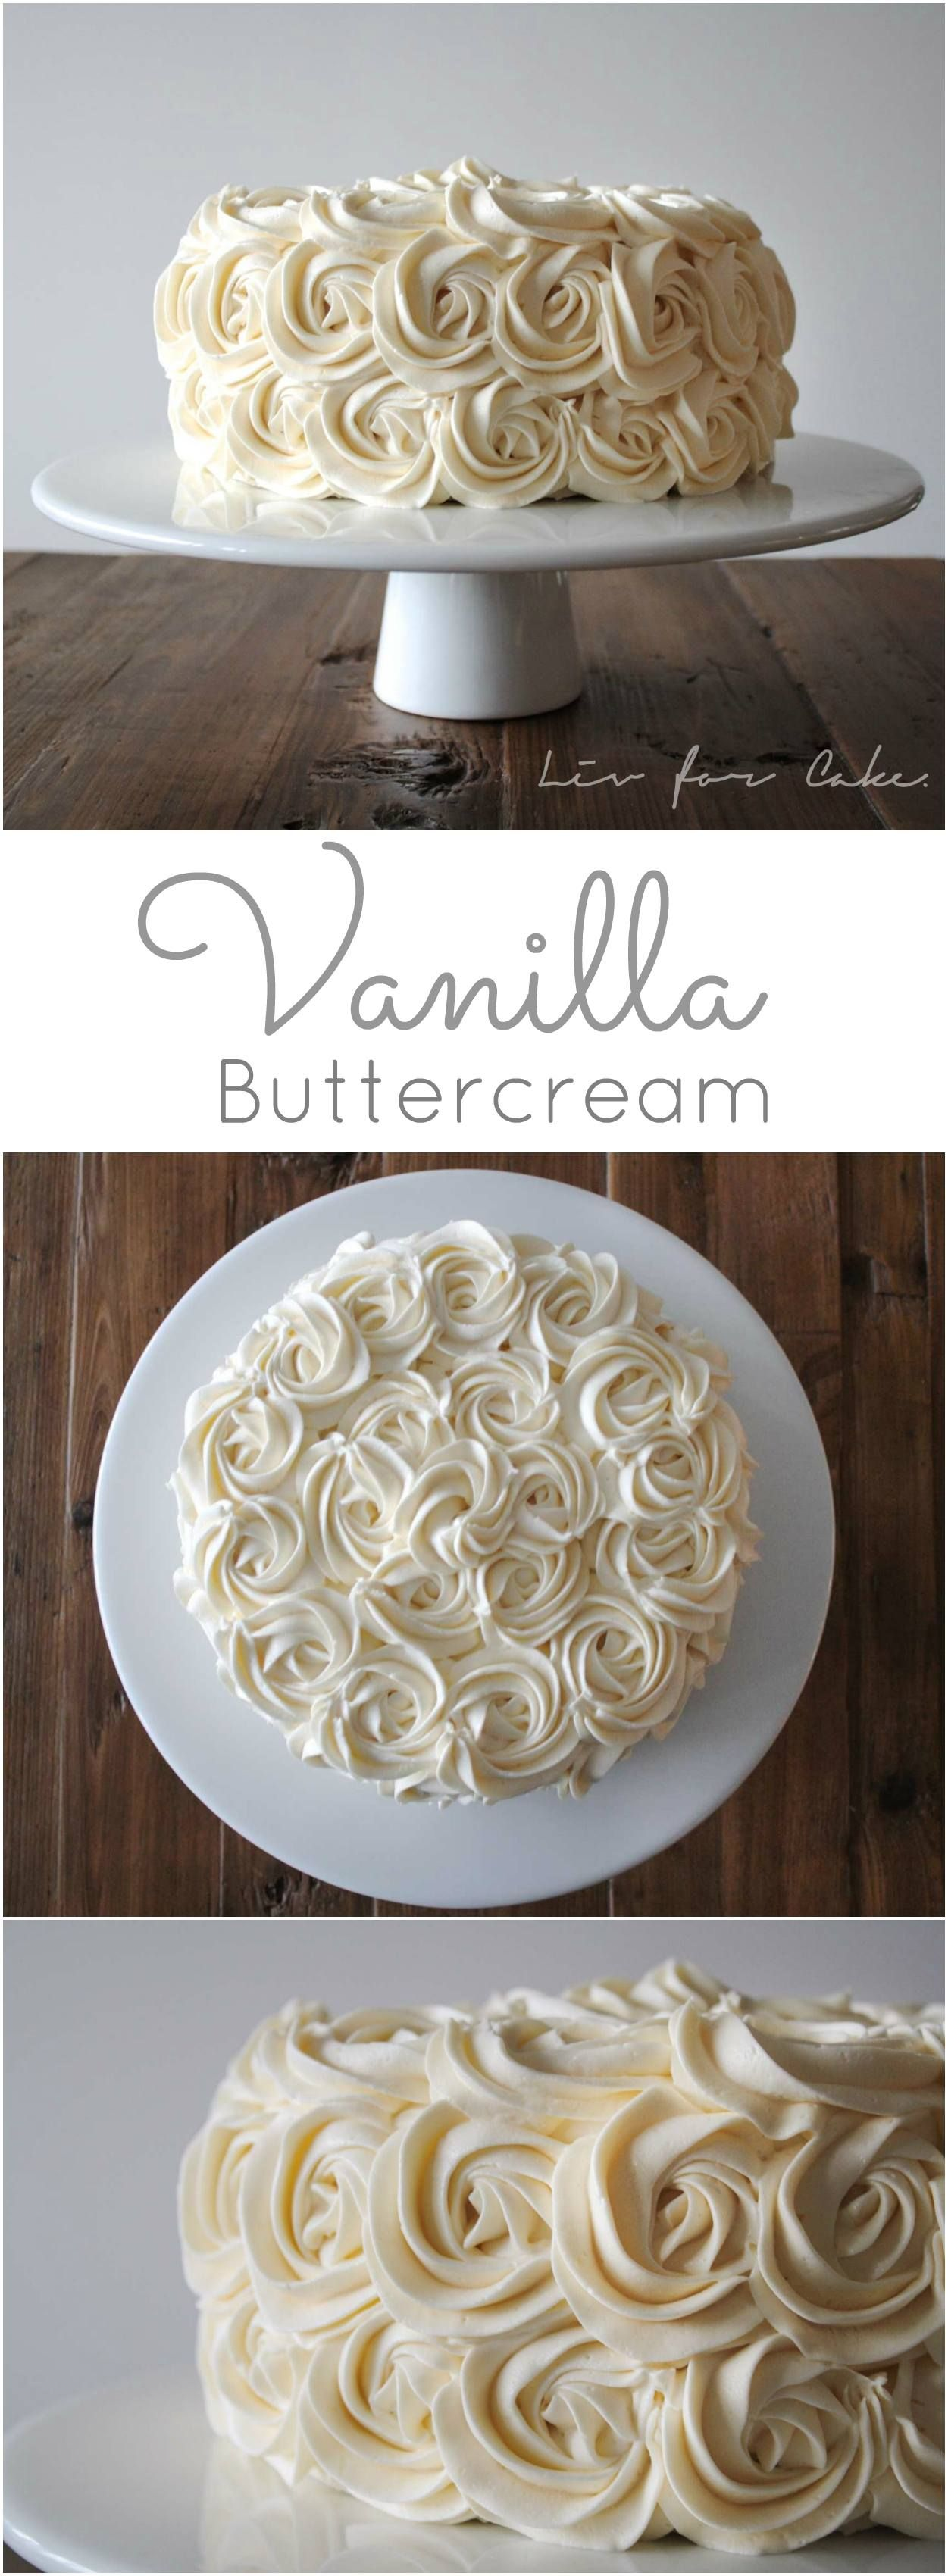 The Best Buttercream Frosting | Recipe | Buttercream frosting and ...